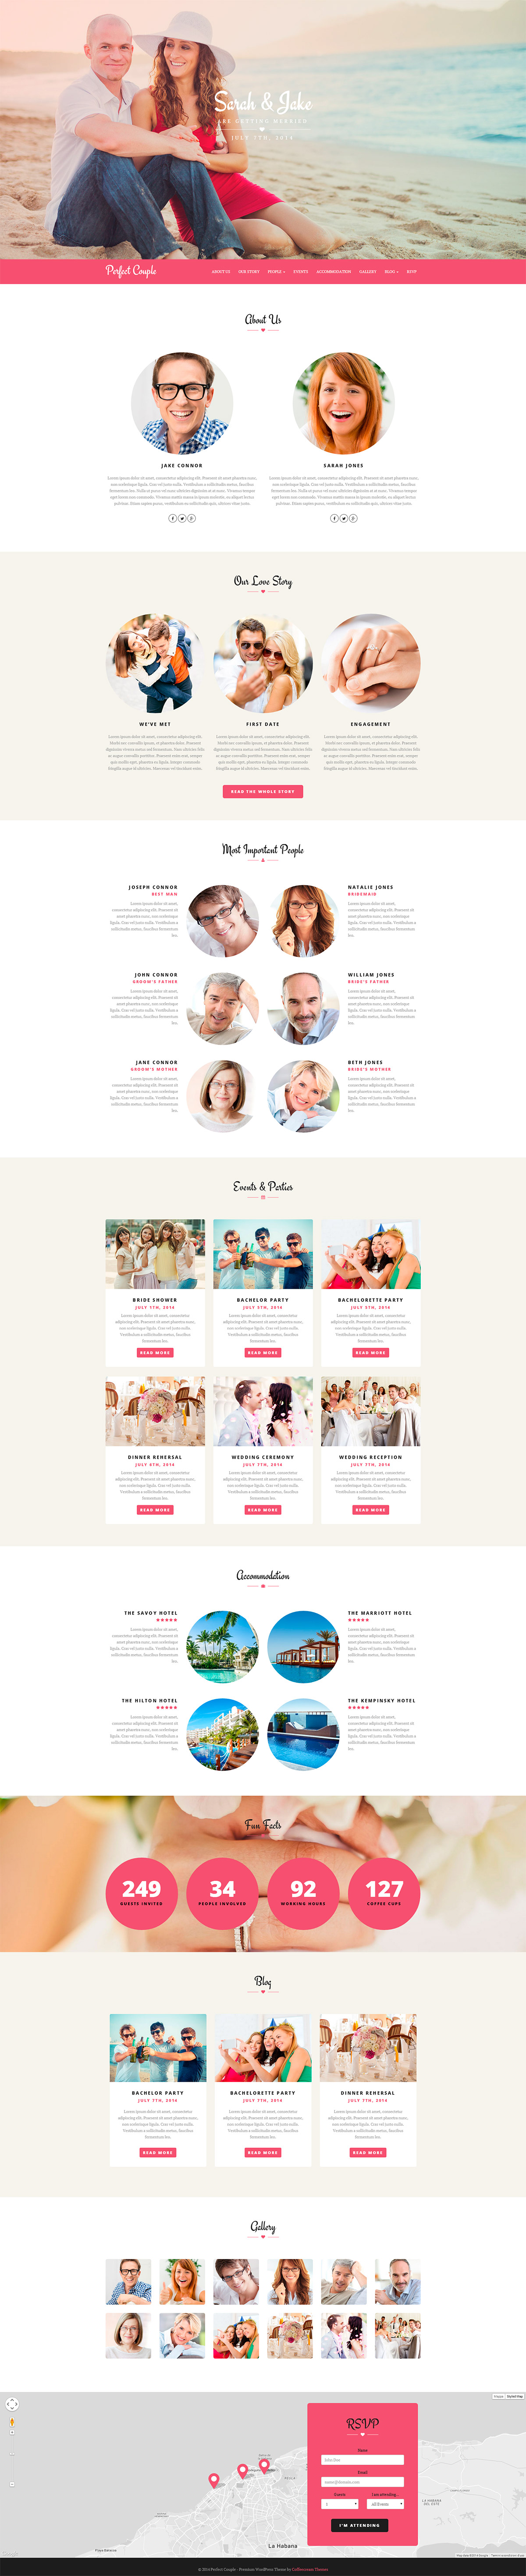 Perfect Couple - Wedding WordPress Theme | Themes themes, Wedding ...